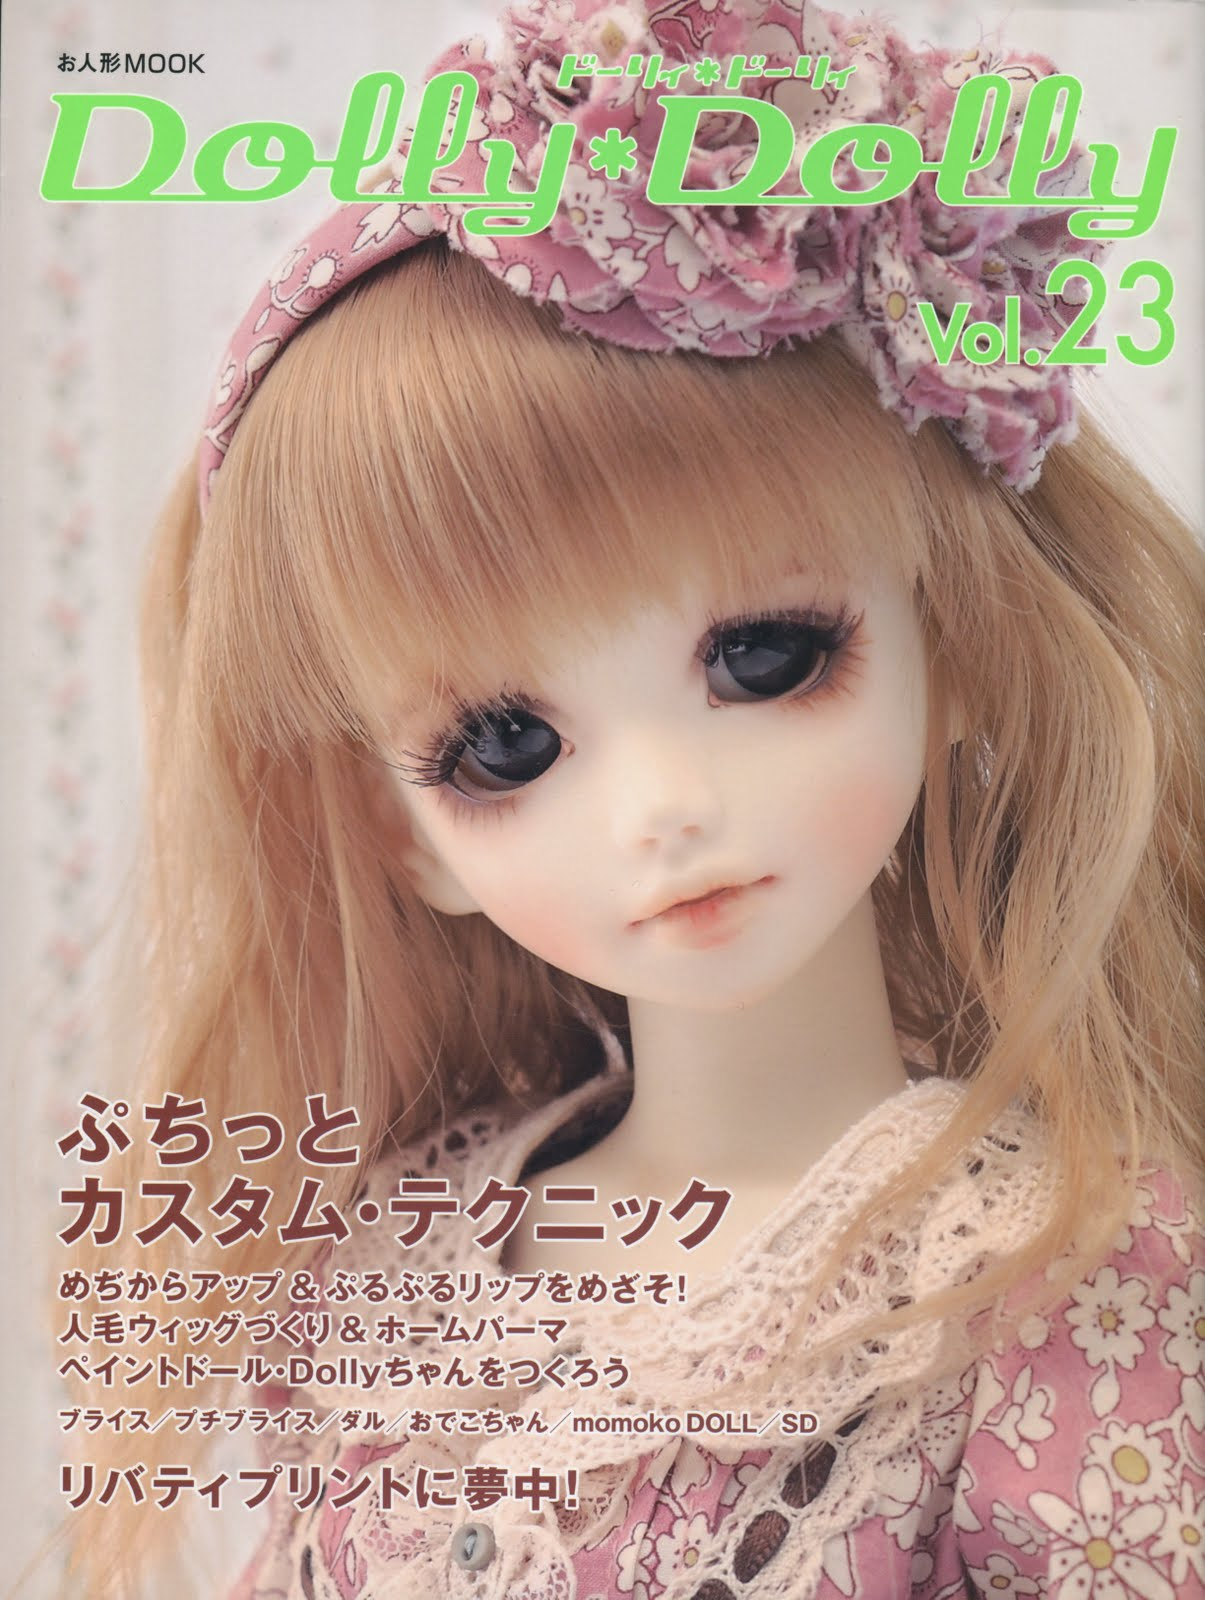 Dolly Dolly vol 23